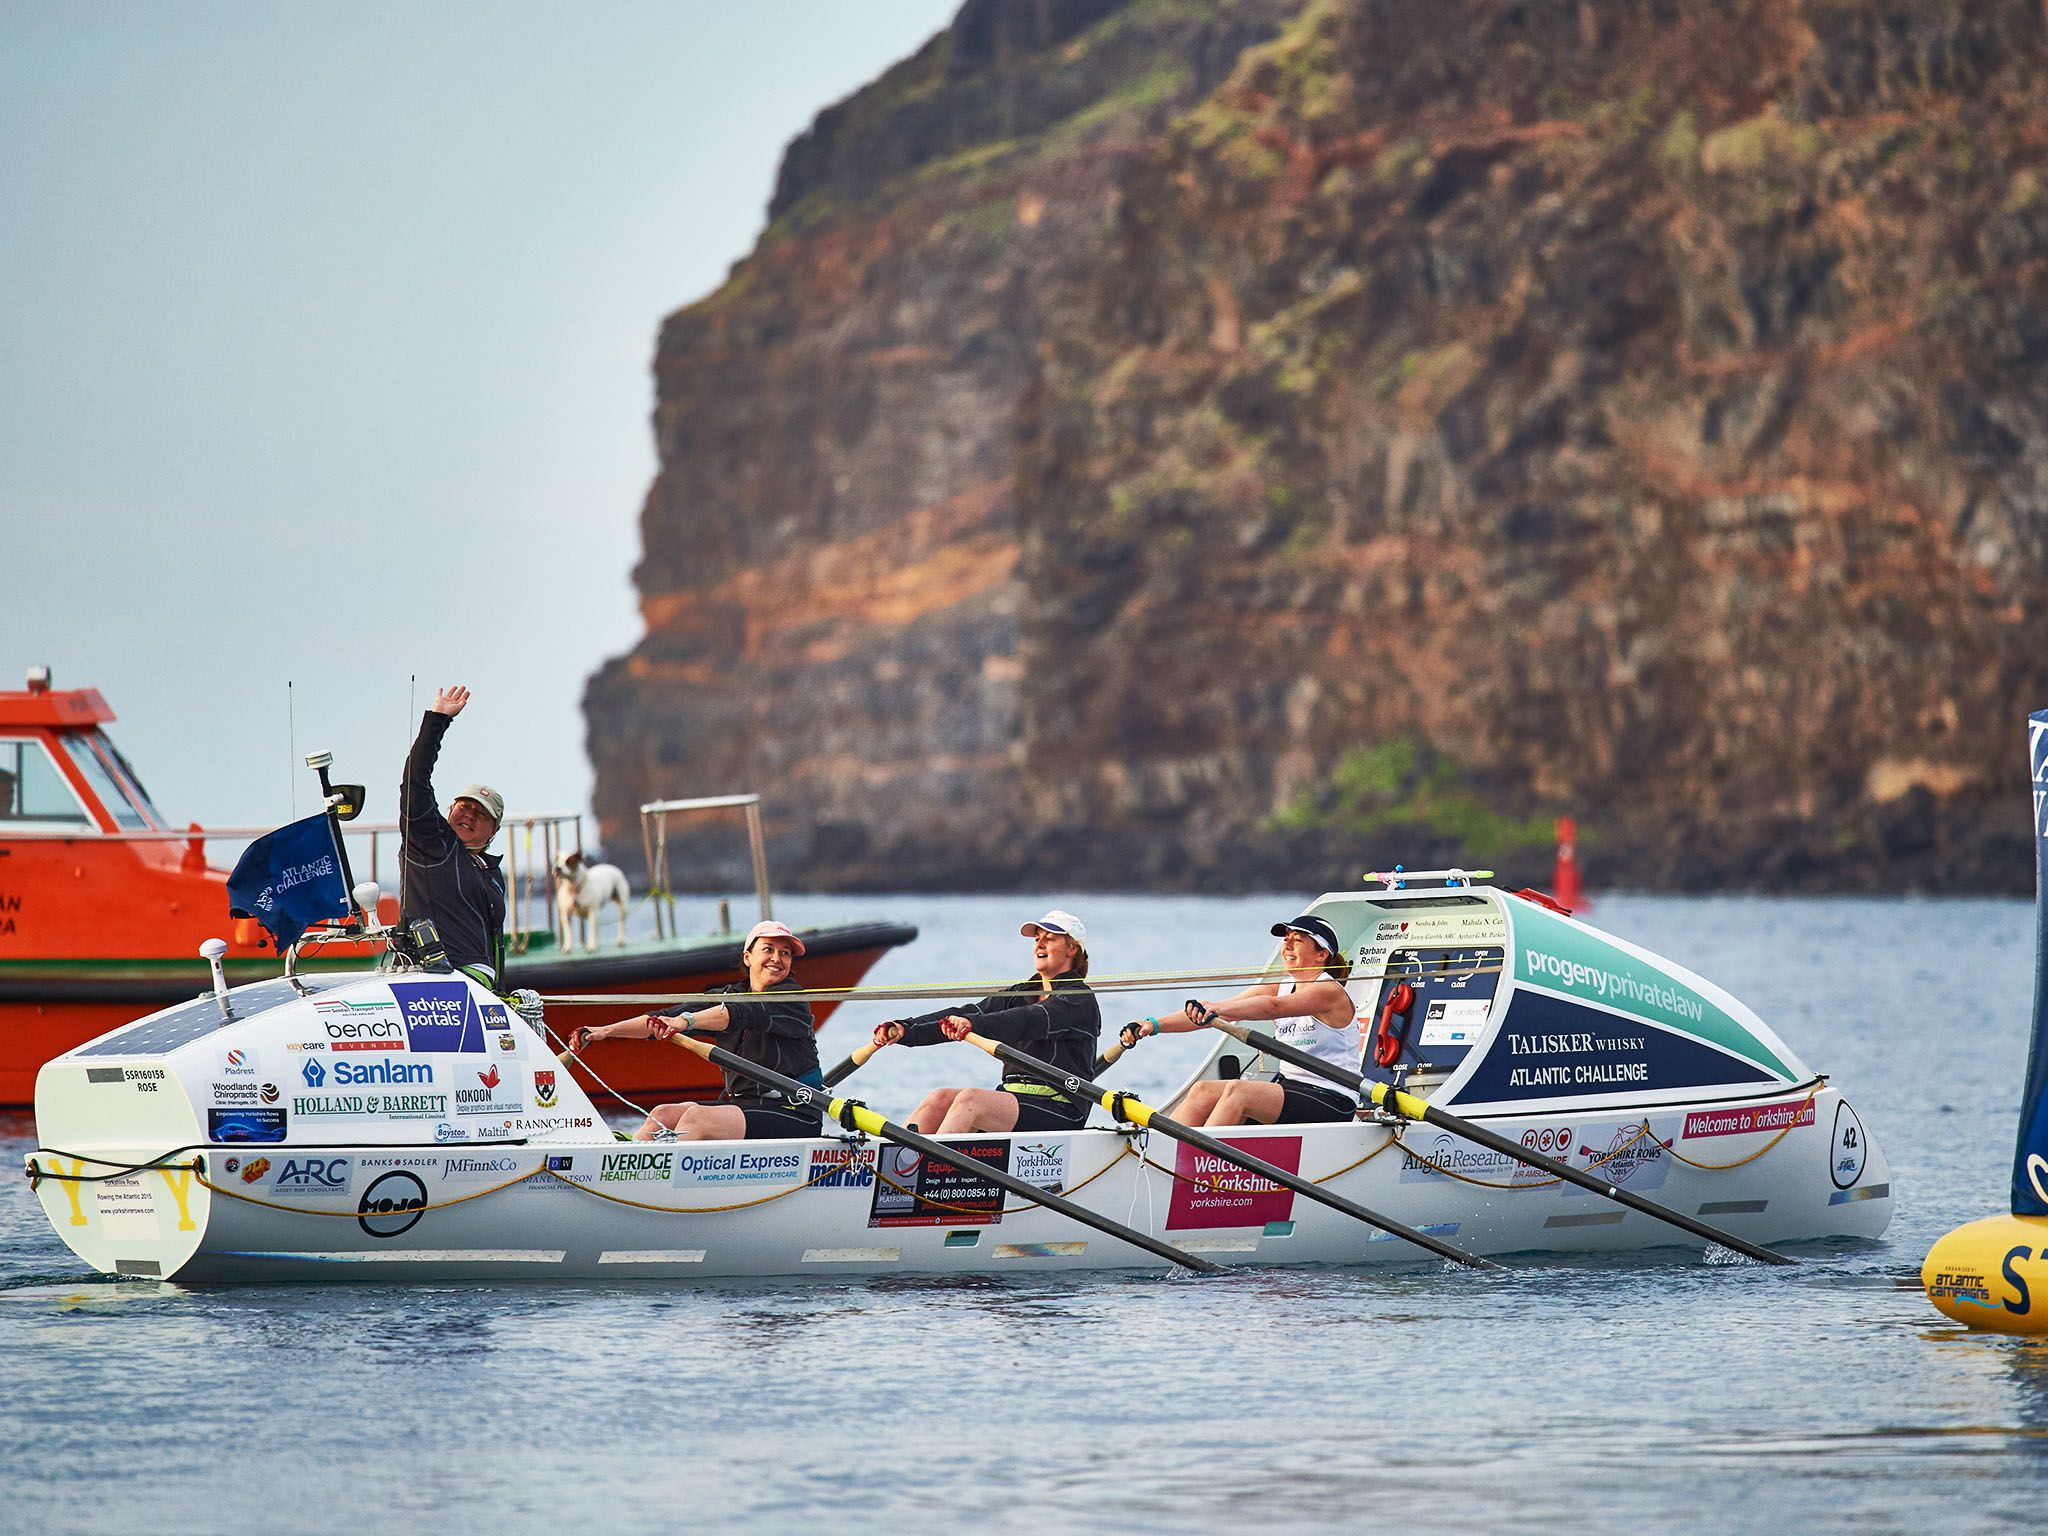 La Gomera: Four Mums from Yorkshire depart la Gomera as they attempt to break a world record for... [Photo of the day - June 2016]